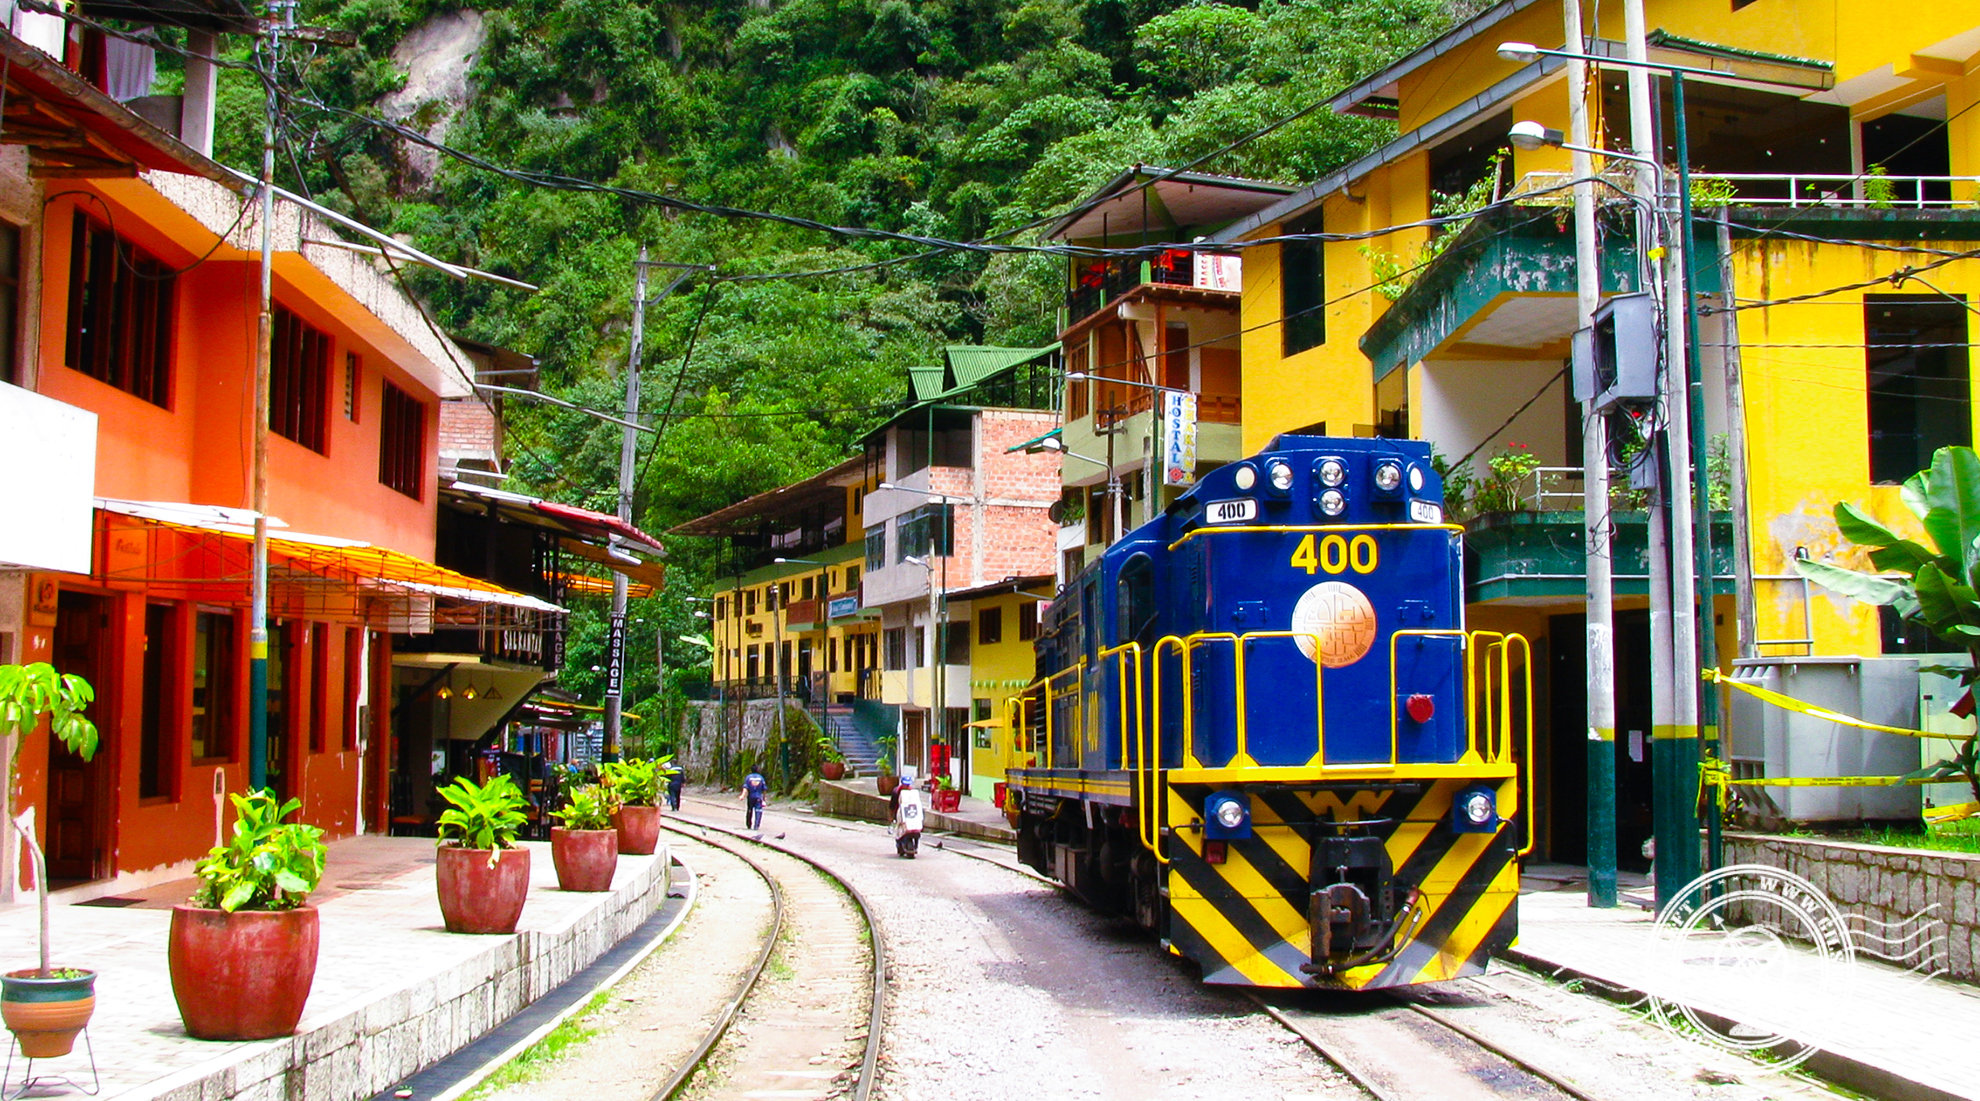 Train in Aguas Calientes, the Machu Picchu Pueblo